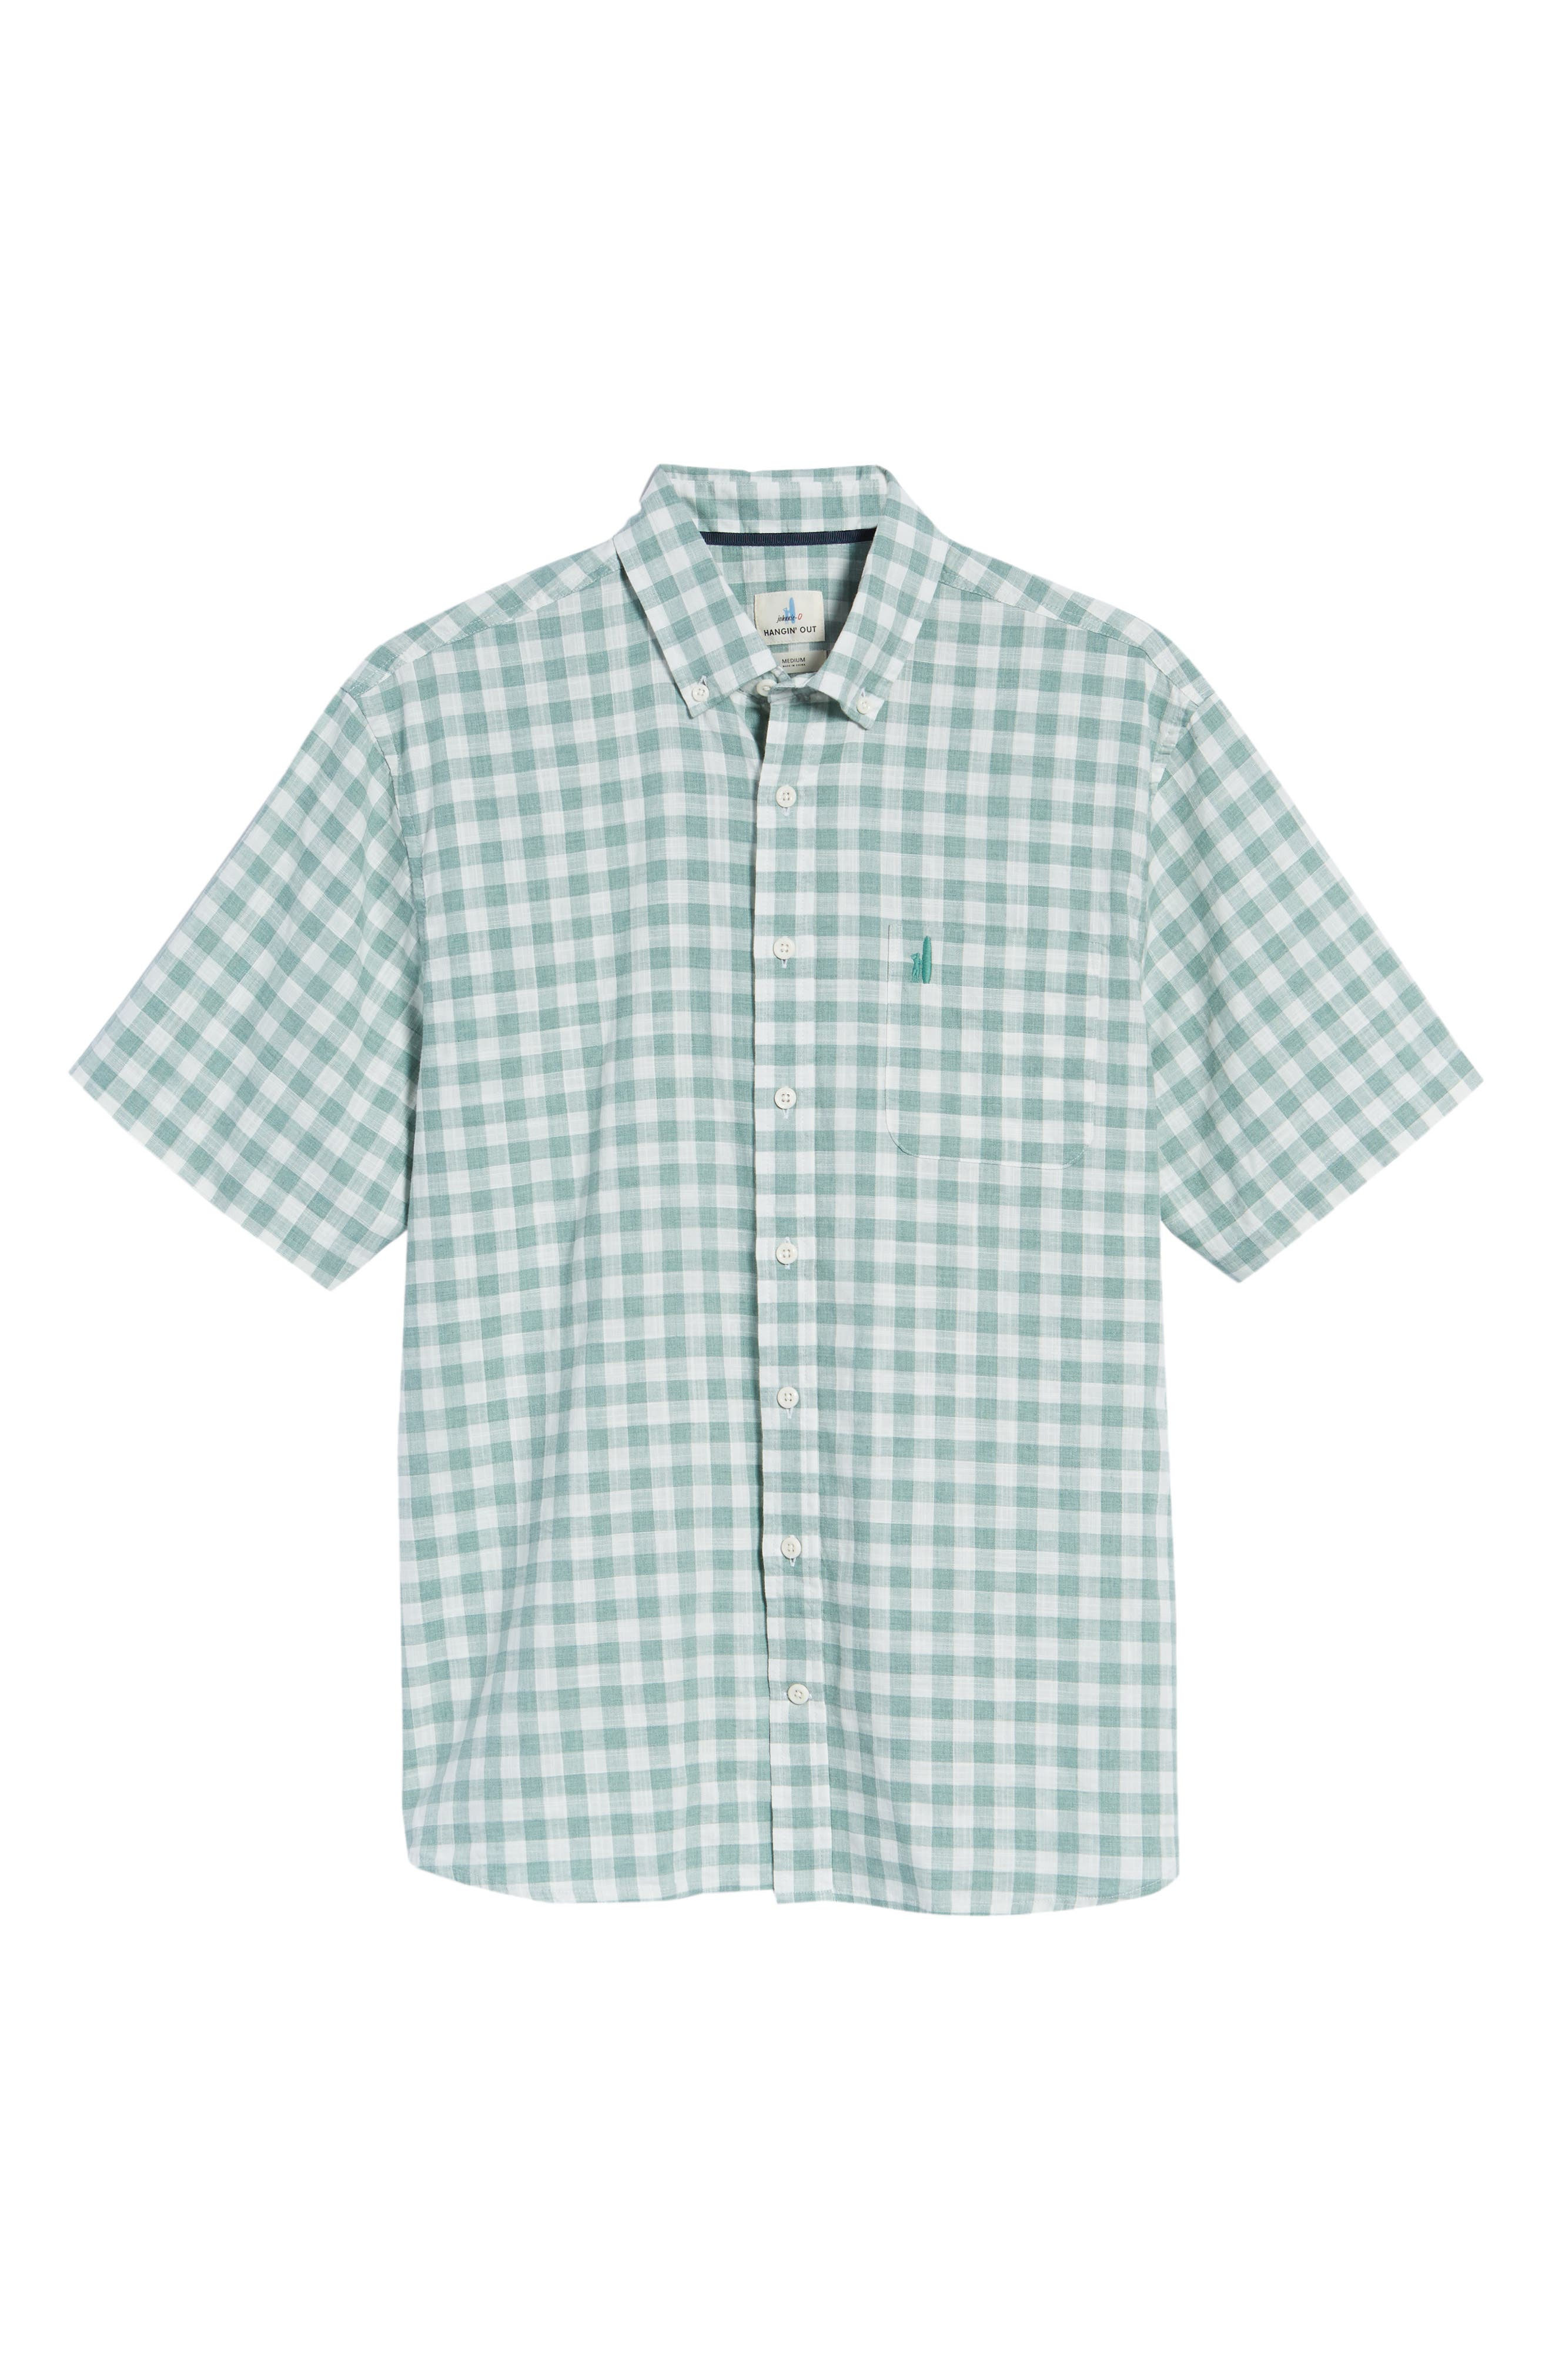 Watts Classic Fit Gingham Sport Shirt,                             Alternate thumbnail 6, color,                             Clover